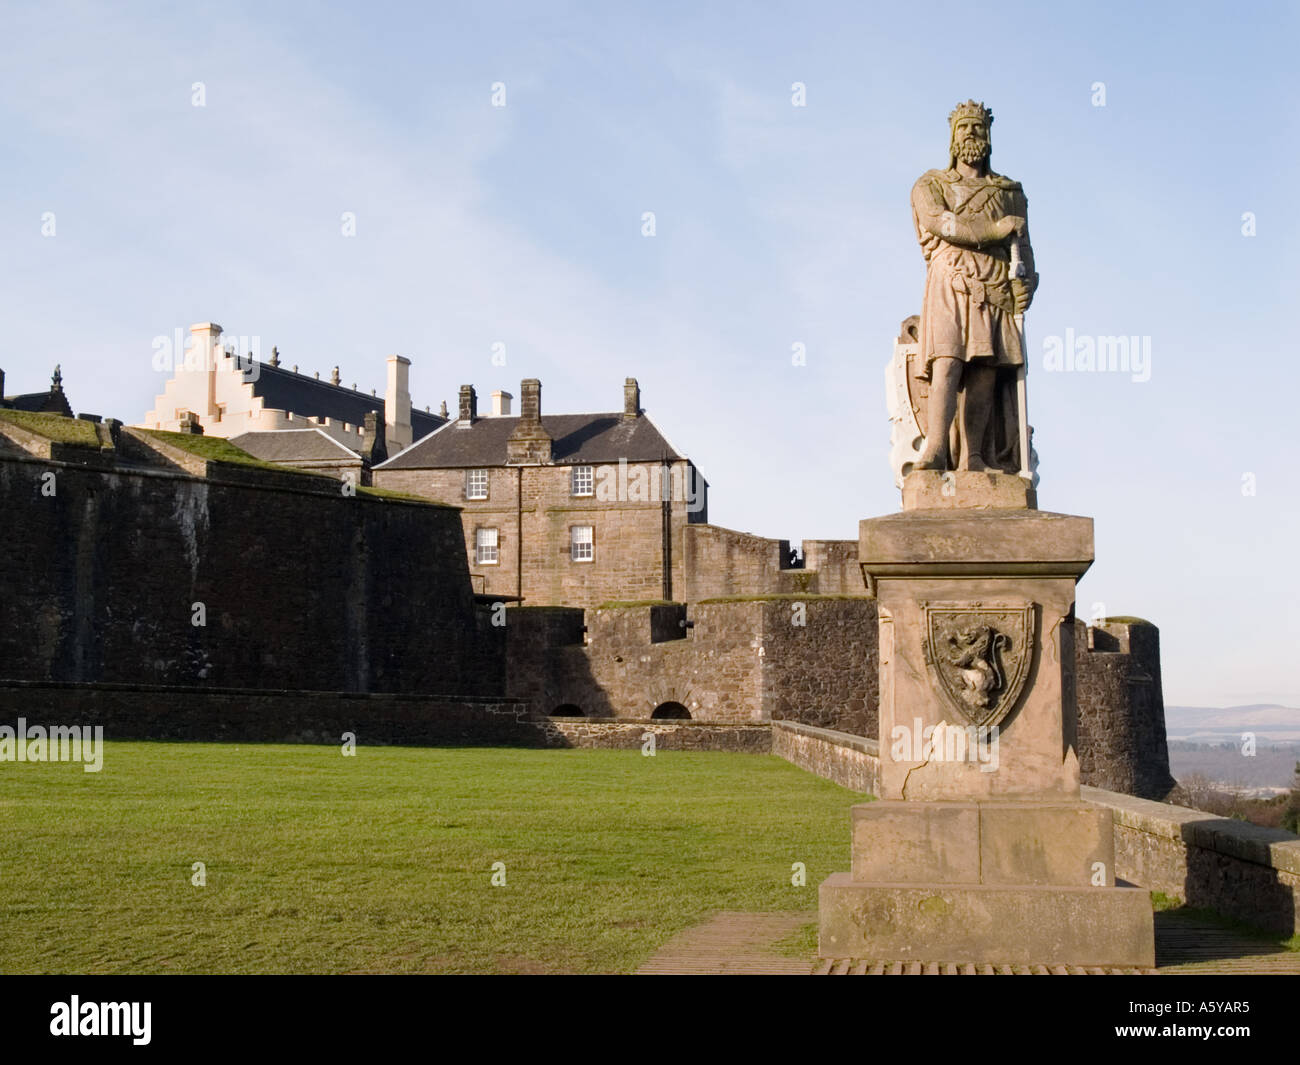 Stirling Scotland UK King Robert the Bruce statue standing in front of Stirling Castle on eslpanade. Stock Photo